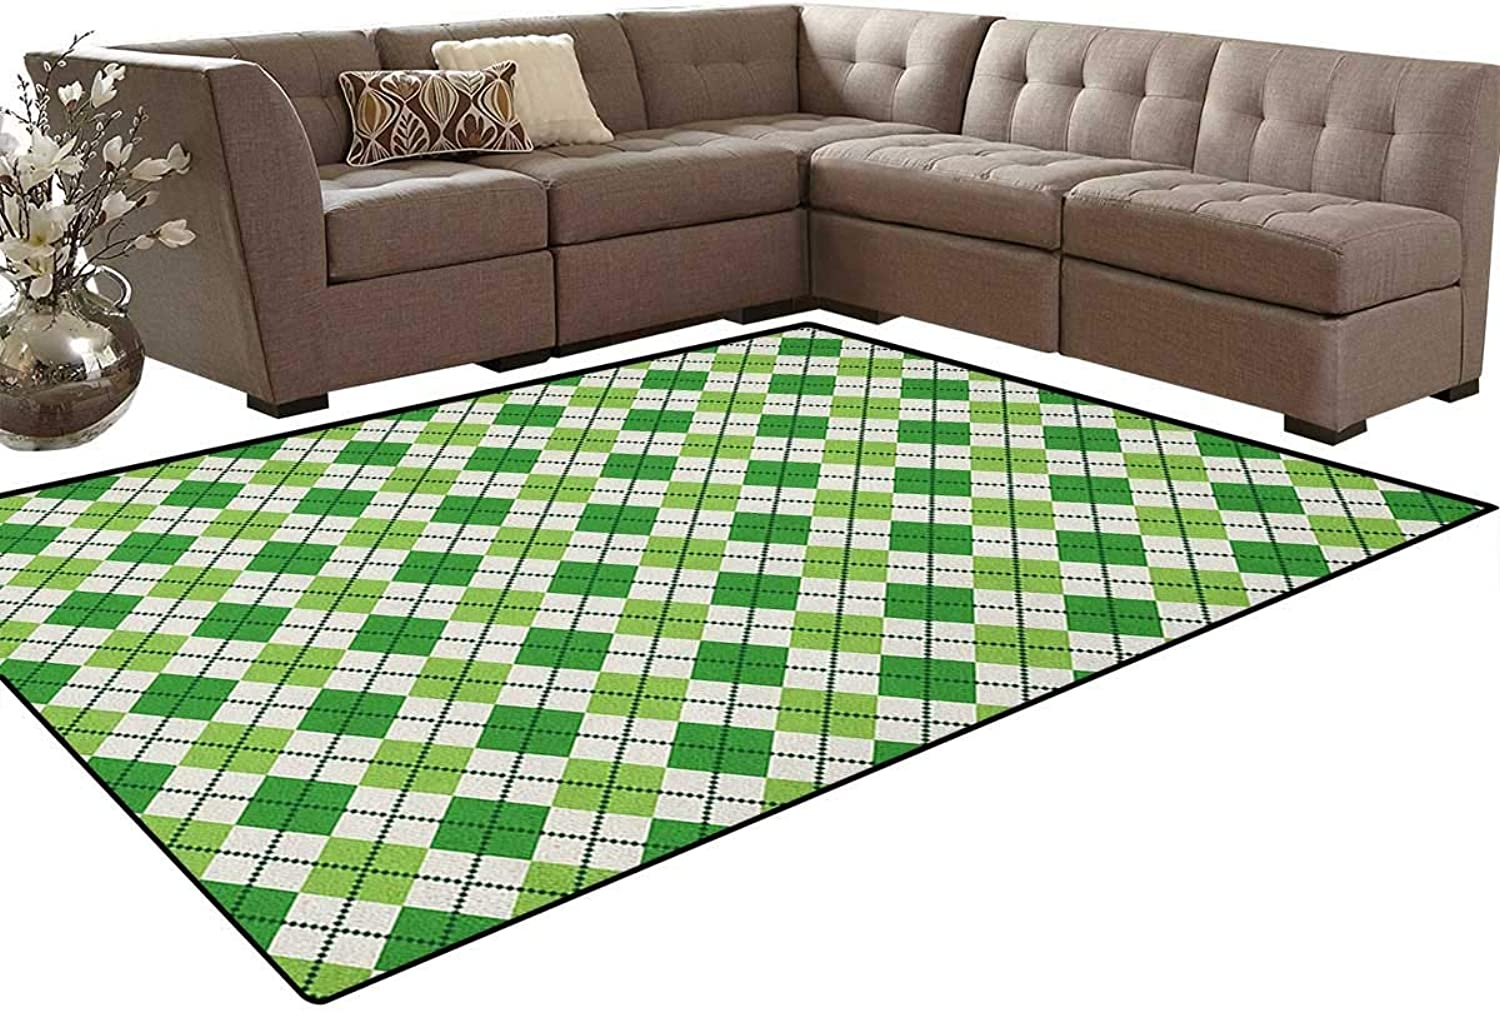 Classical Argyle Diamond Line Pattern with Crosswise Lines Old Fashioned Floor Mat Rug Indoor Front Door Kitchen and Living Room Bedroom Mats Rubber Non Slip